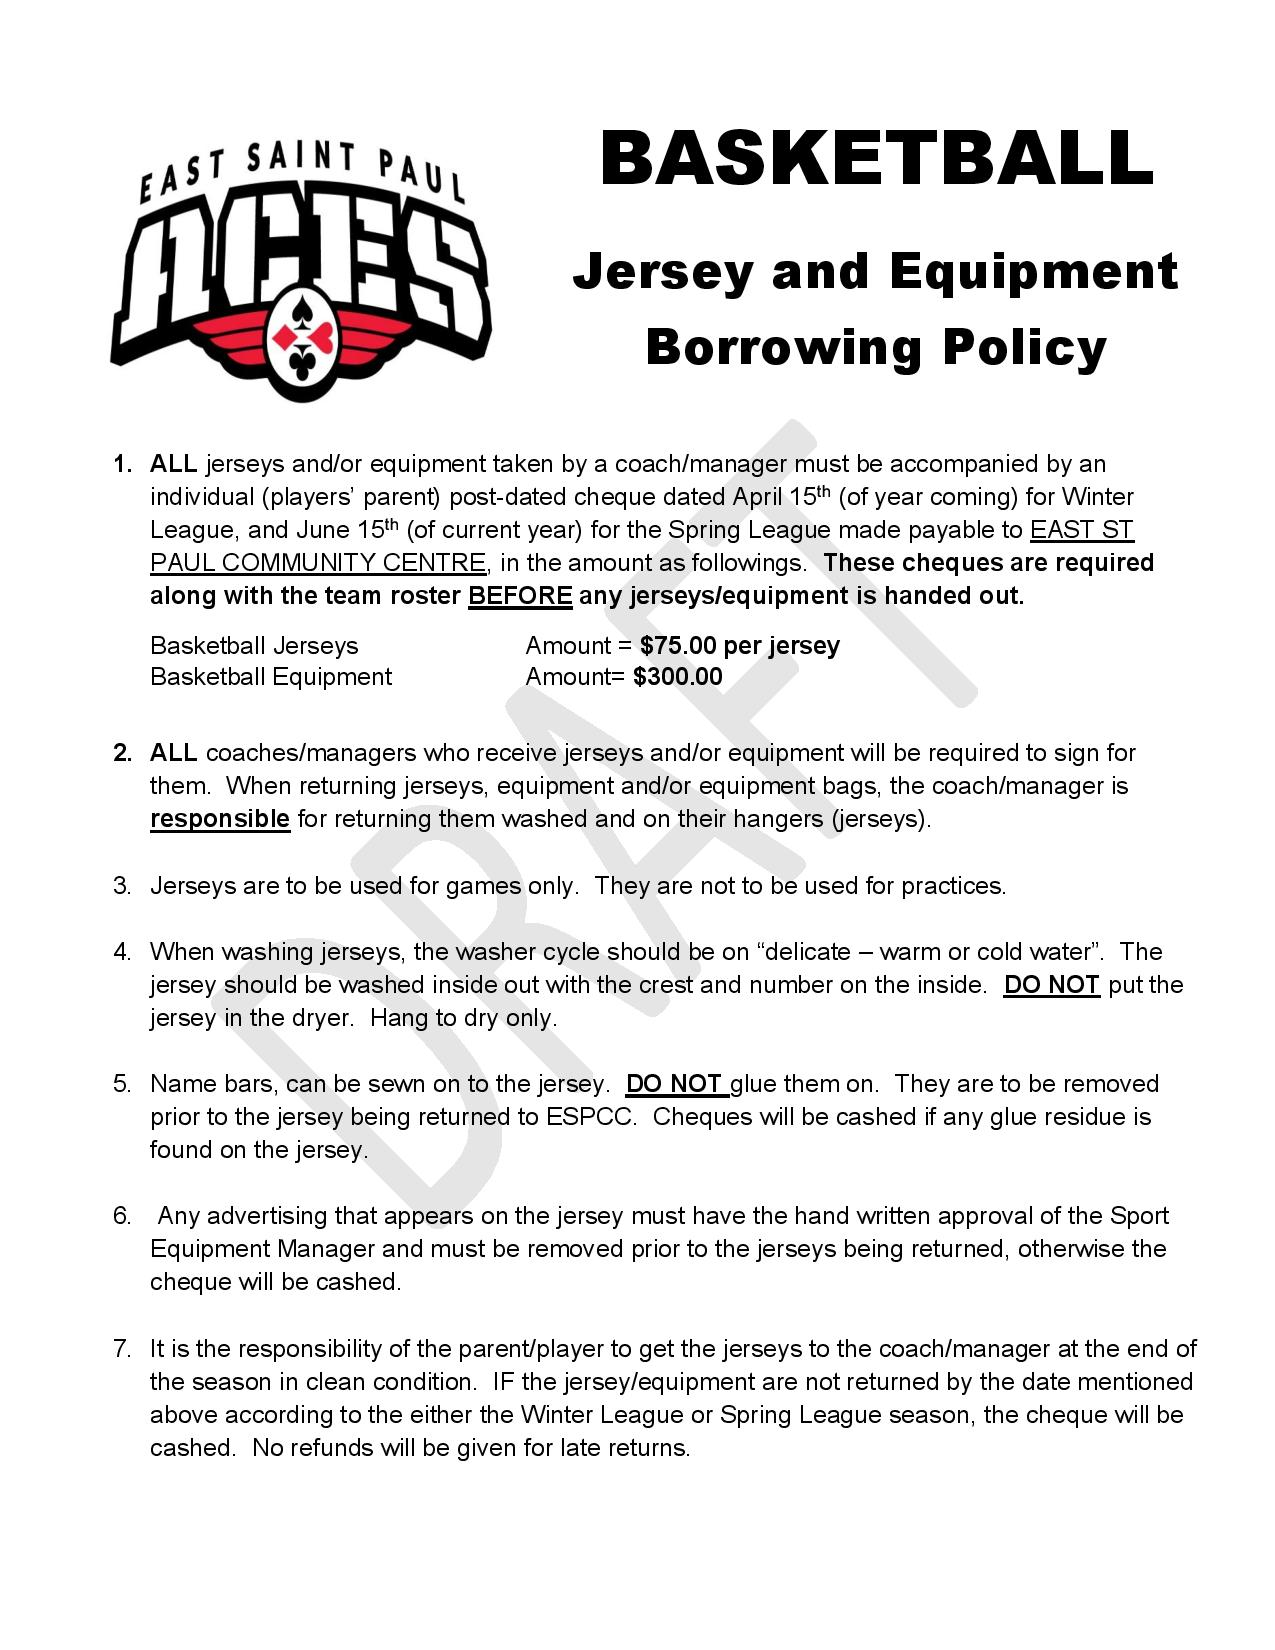 Basketball Jersey & Equip Policy